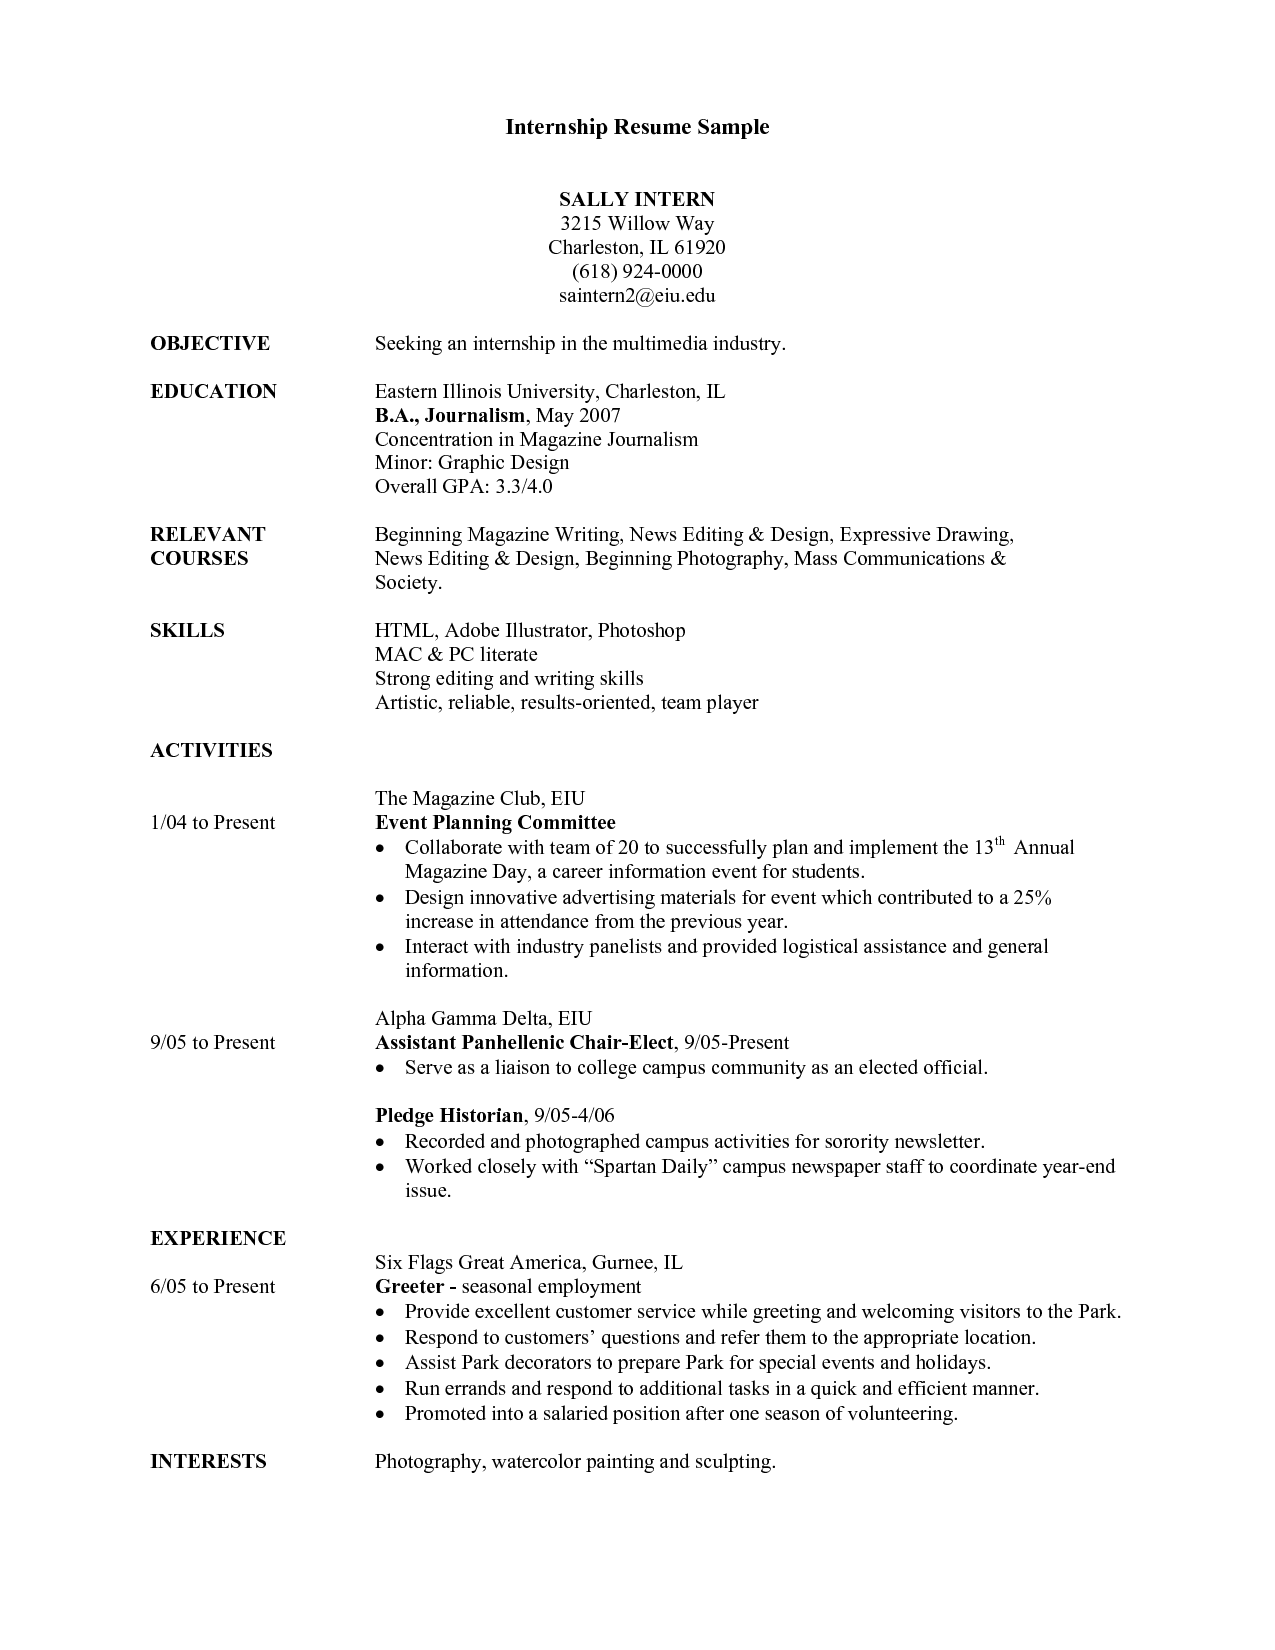 Objective Resume Internship College Student Resume For Internship Task List Templates